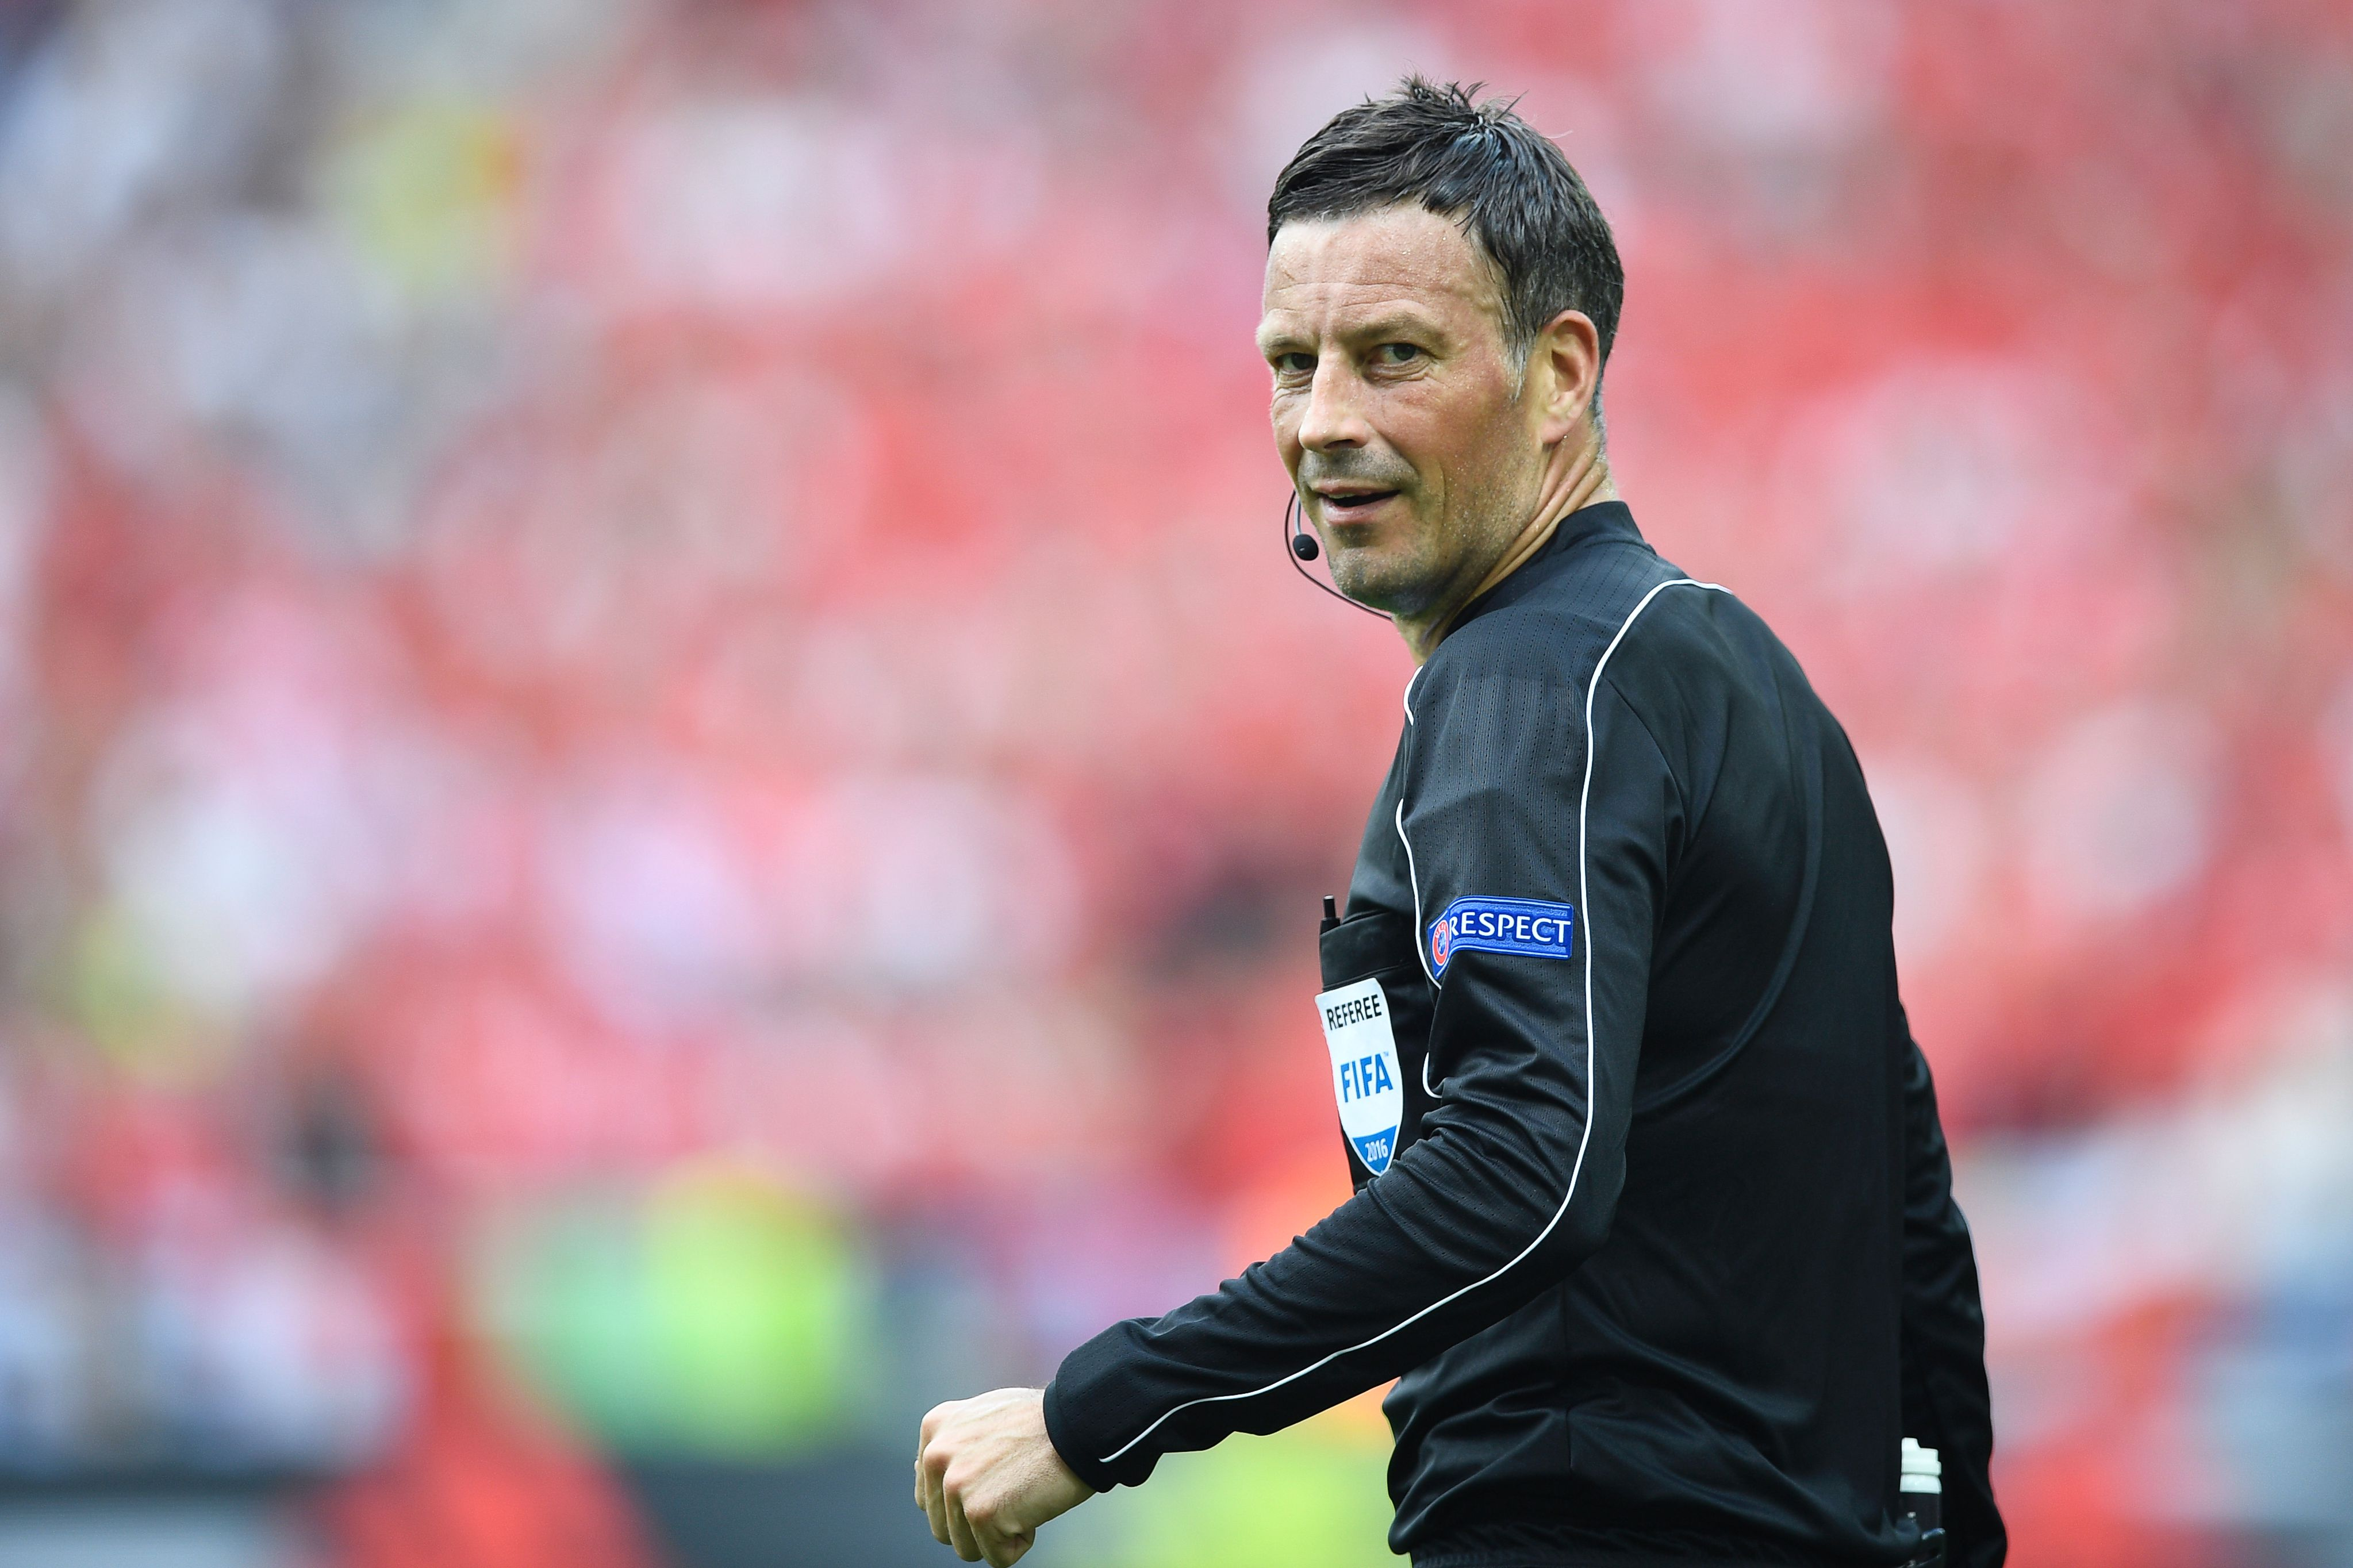 Mark Clattenburg to referee Euro 2016 final in Paris as France face Portugal